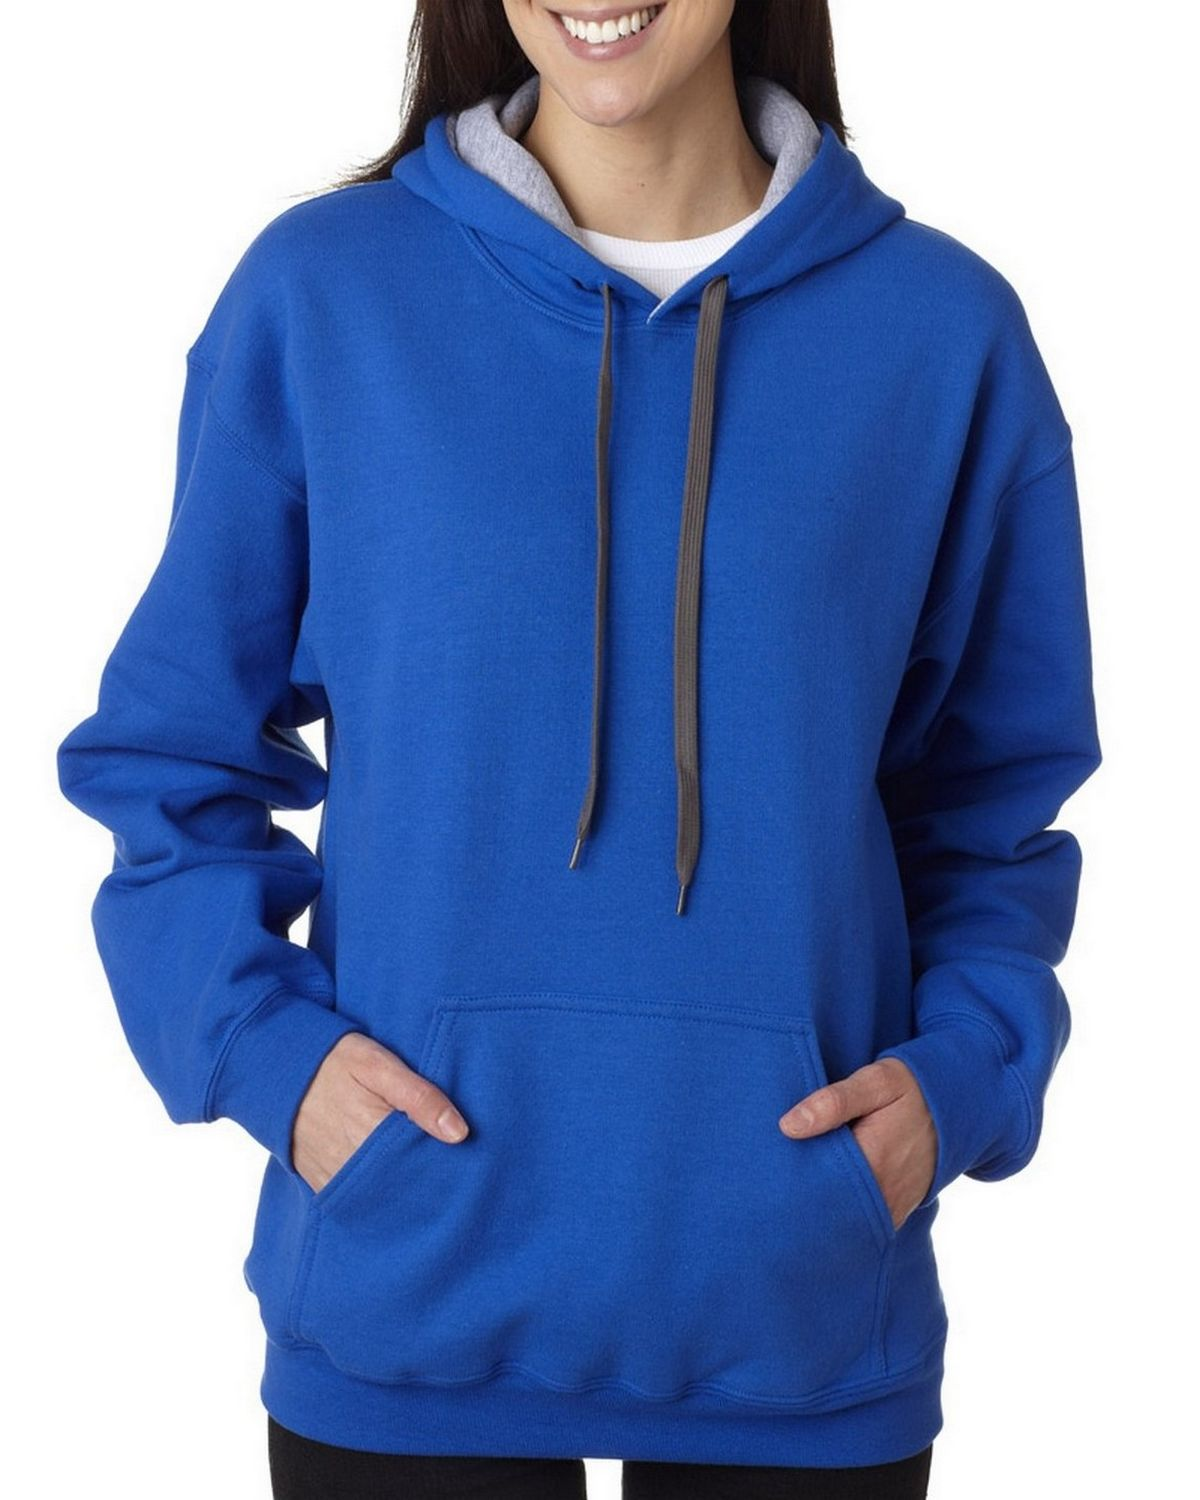 Gildan 185C00 Heavy Blend Hooded Sweatshirt - Royal/Sport/Grey - XL 185C00